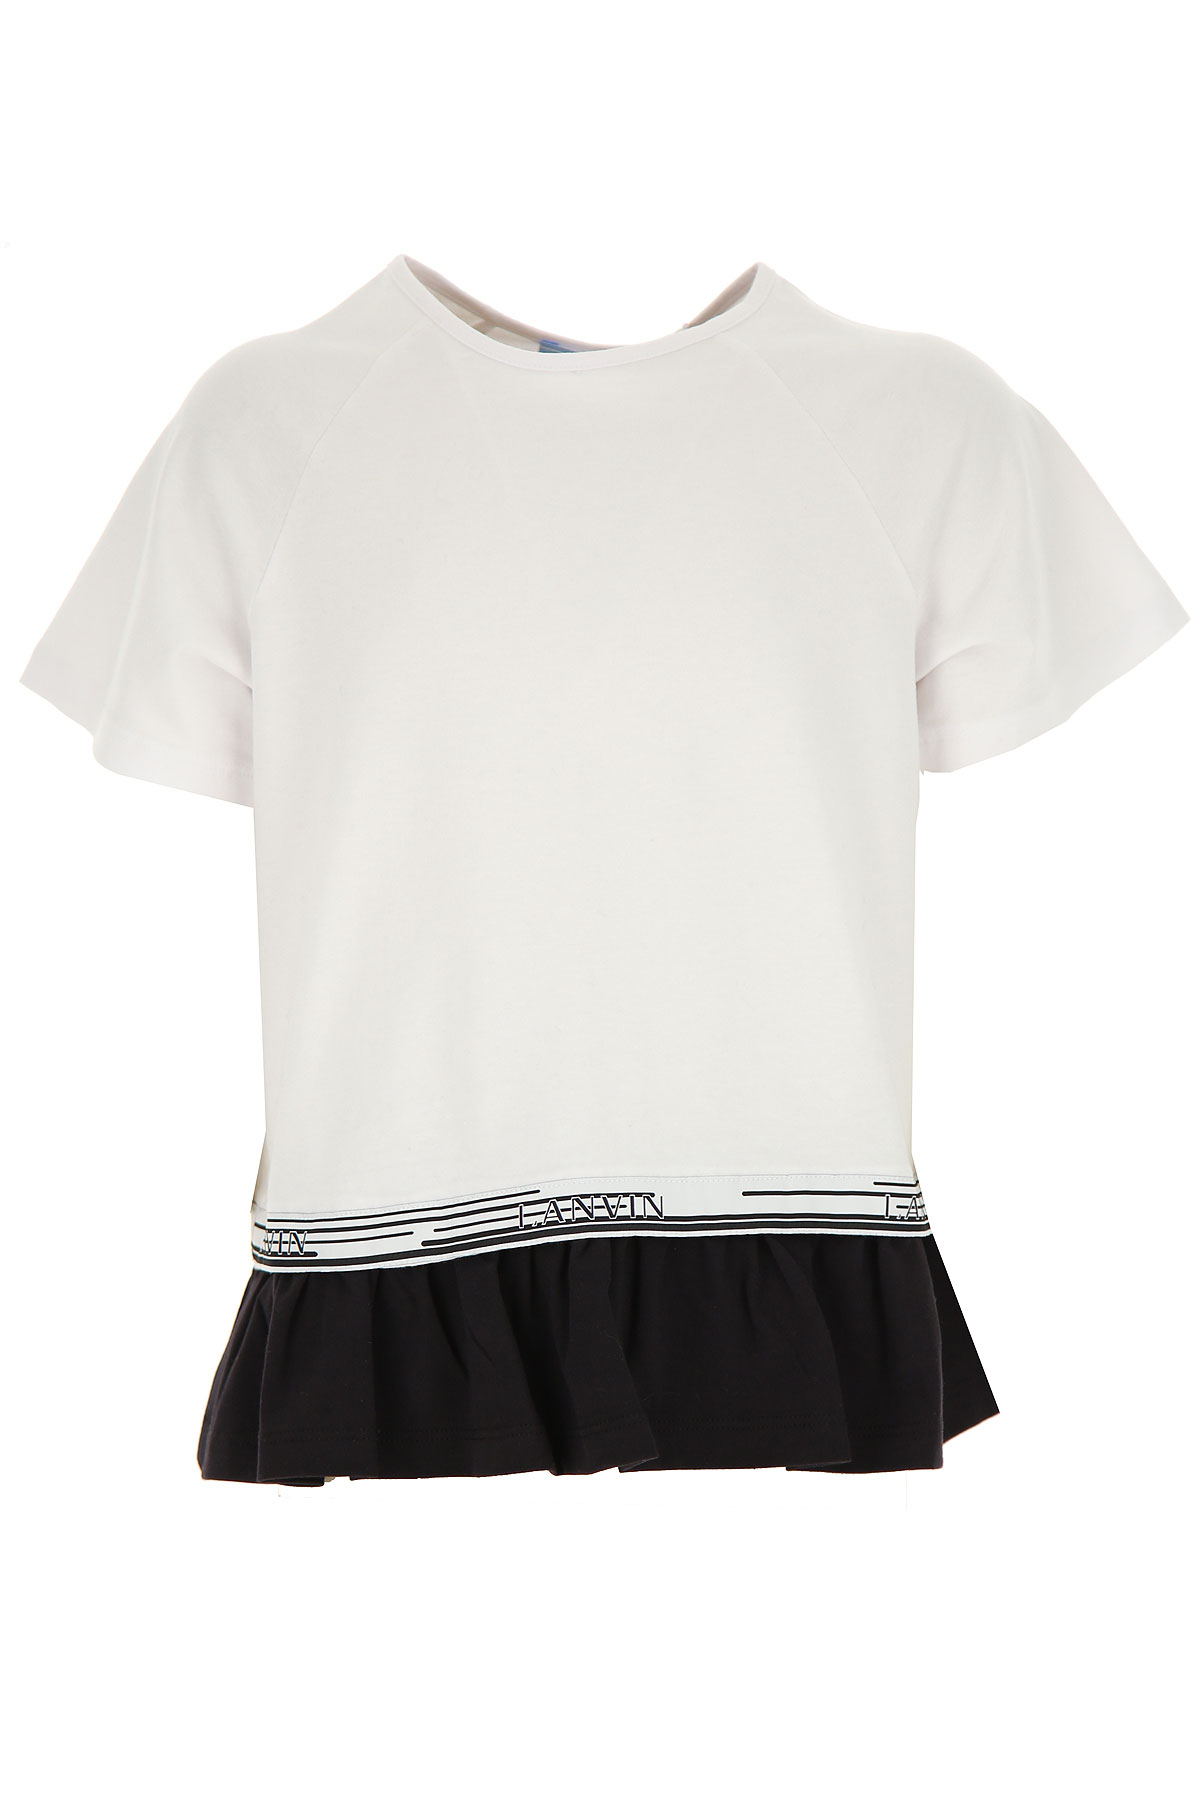 Lanvin Kids T-Shirt for Girls On Sale, White, Cotton, 2019, 10Y 12Y 2Y 4Y 6Y 8Y